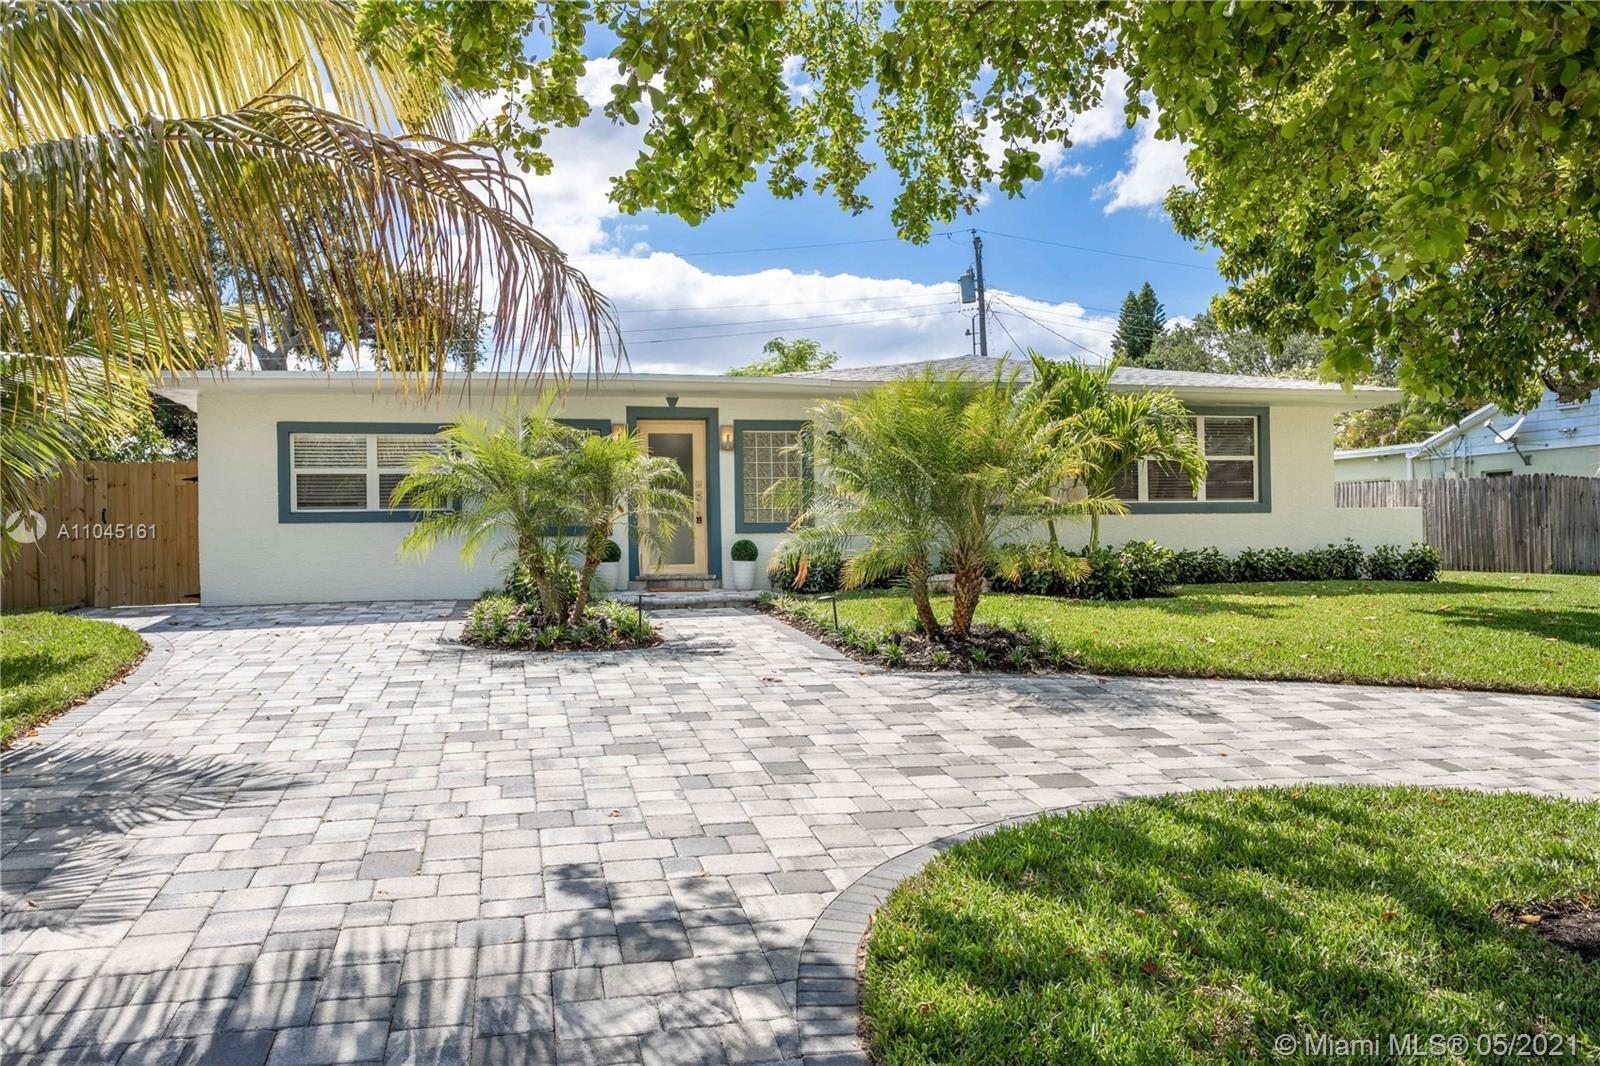 COMPLETELY RENOVATED FROM TOP TO BOTTOM WITH NO EXPENSE SPARED! ENTERTAINERS DREAM HOME, THIS 4 BEDR